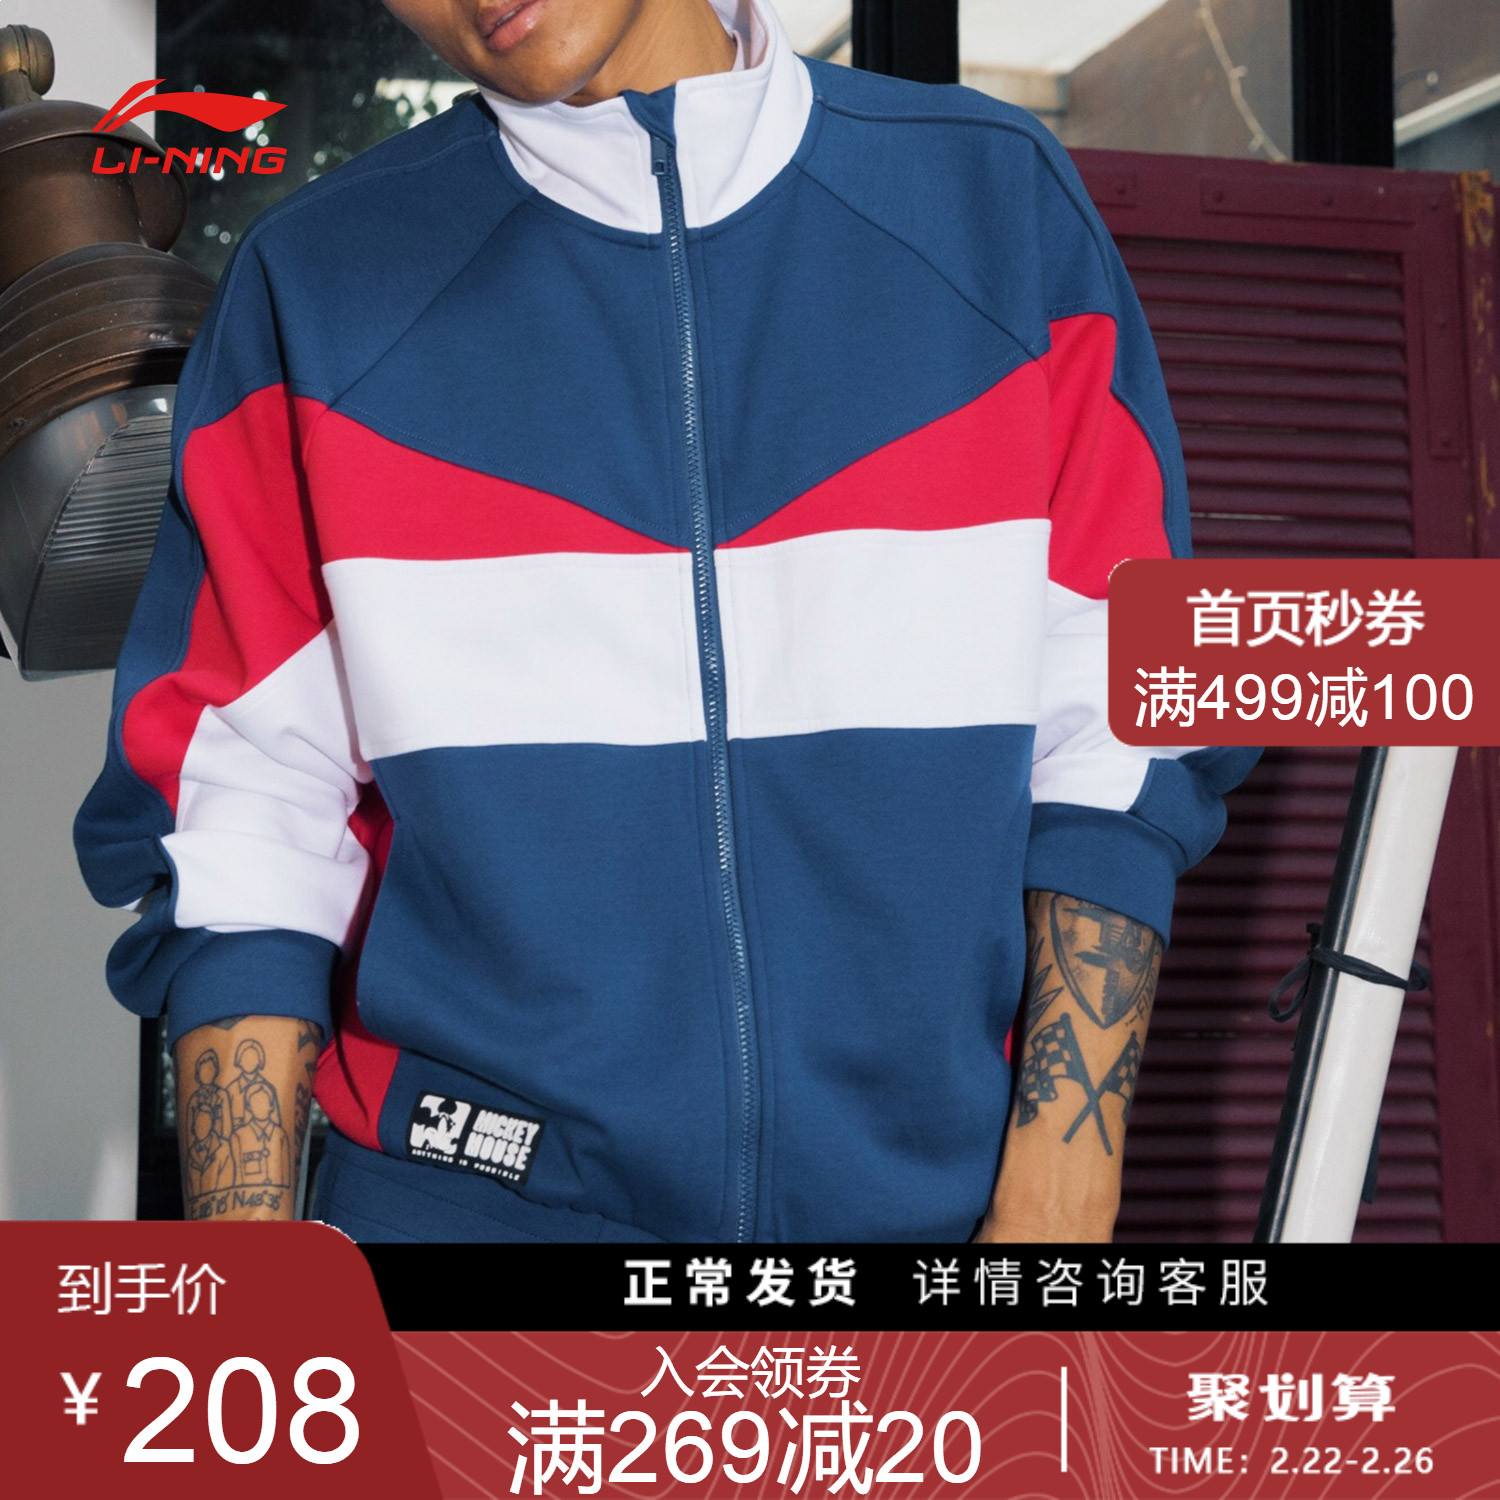 Li Ning Mickey co branded sweater men's and women's Outerwear Vintage cardigan long sleeve men's casual sportswear